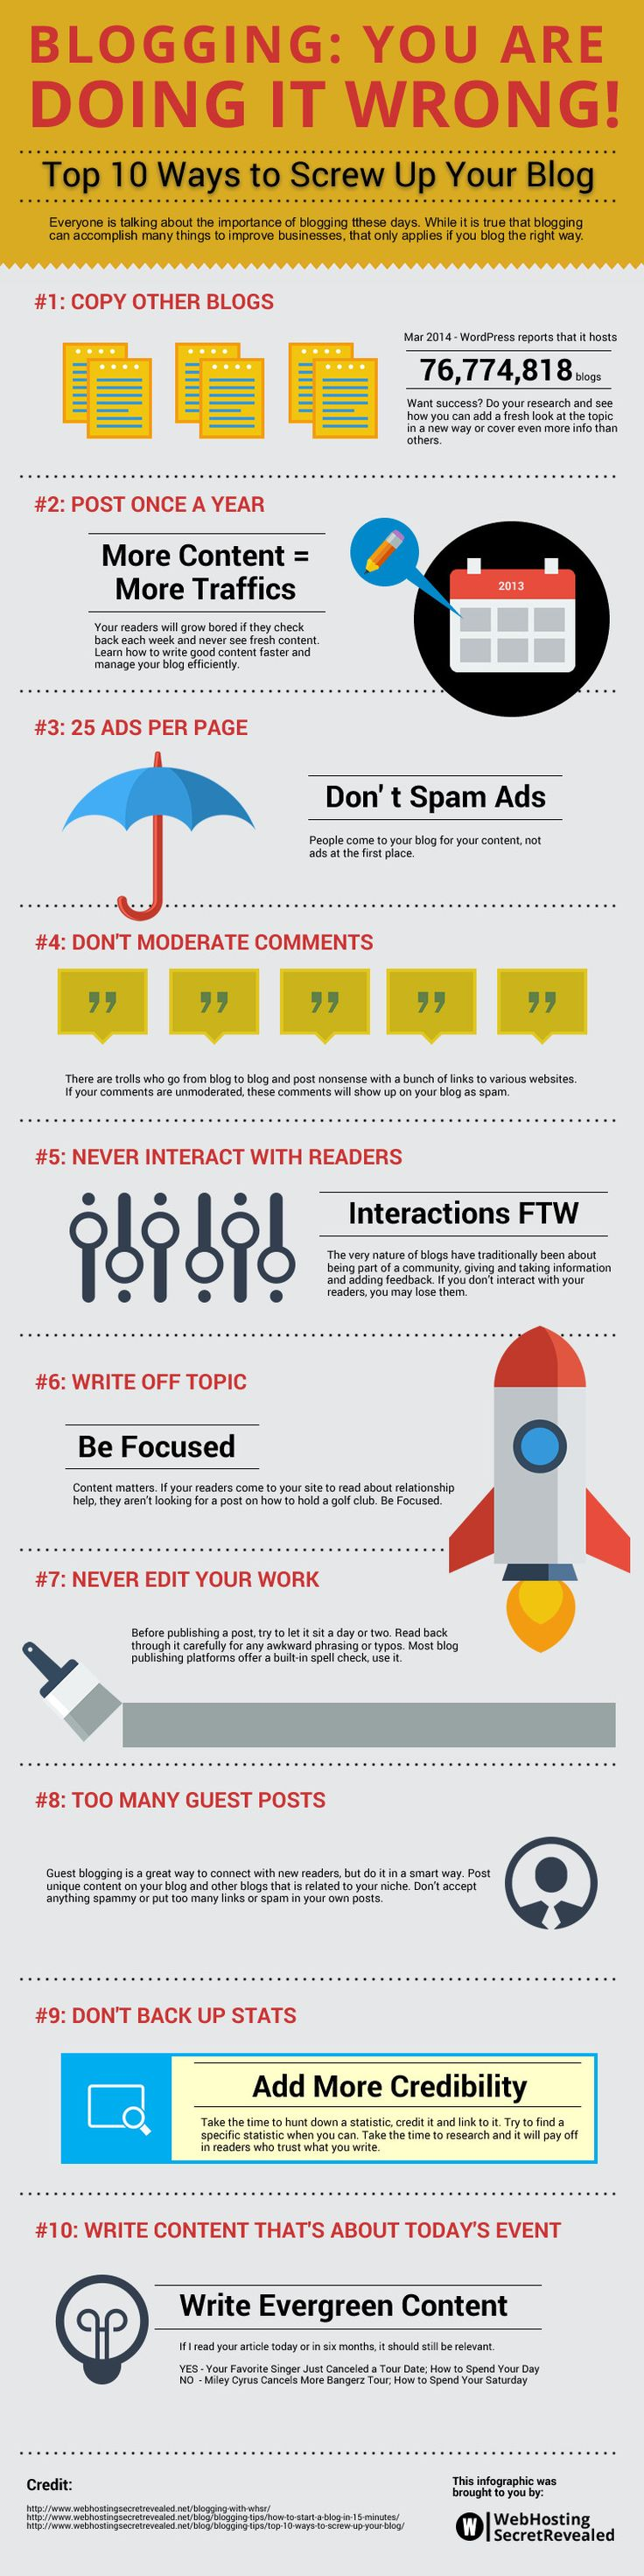 Blogging: You are Doing it Wrong  Top 10 Ways To Screw Up Your Blog   #Blogging #Blog #ContentMarketing #infographic